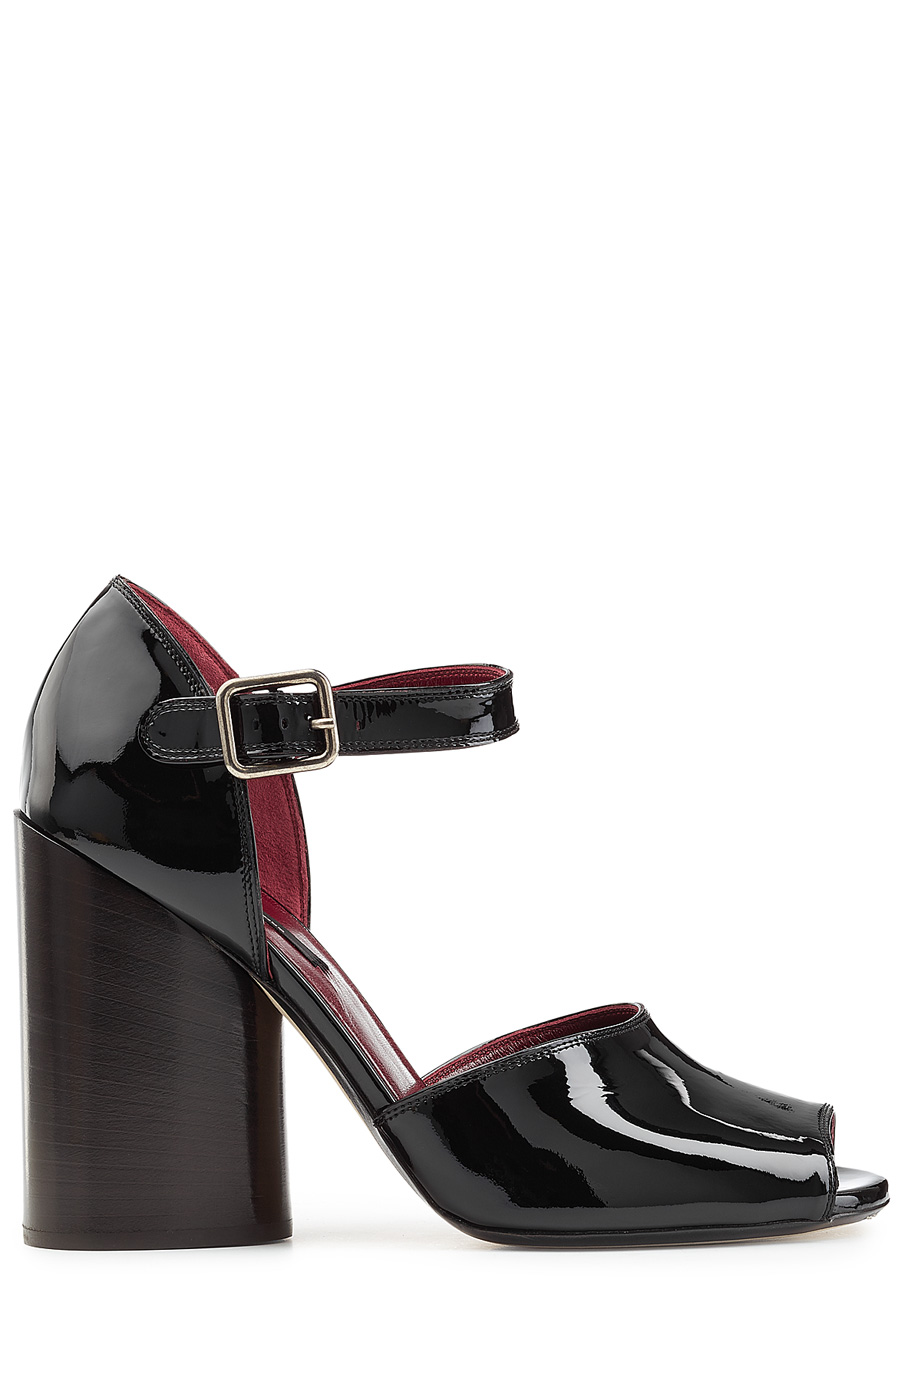 Marc Jacobs Patent Leather Sandals In Black